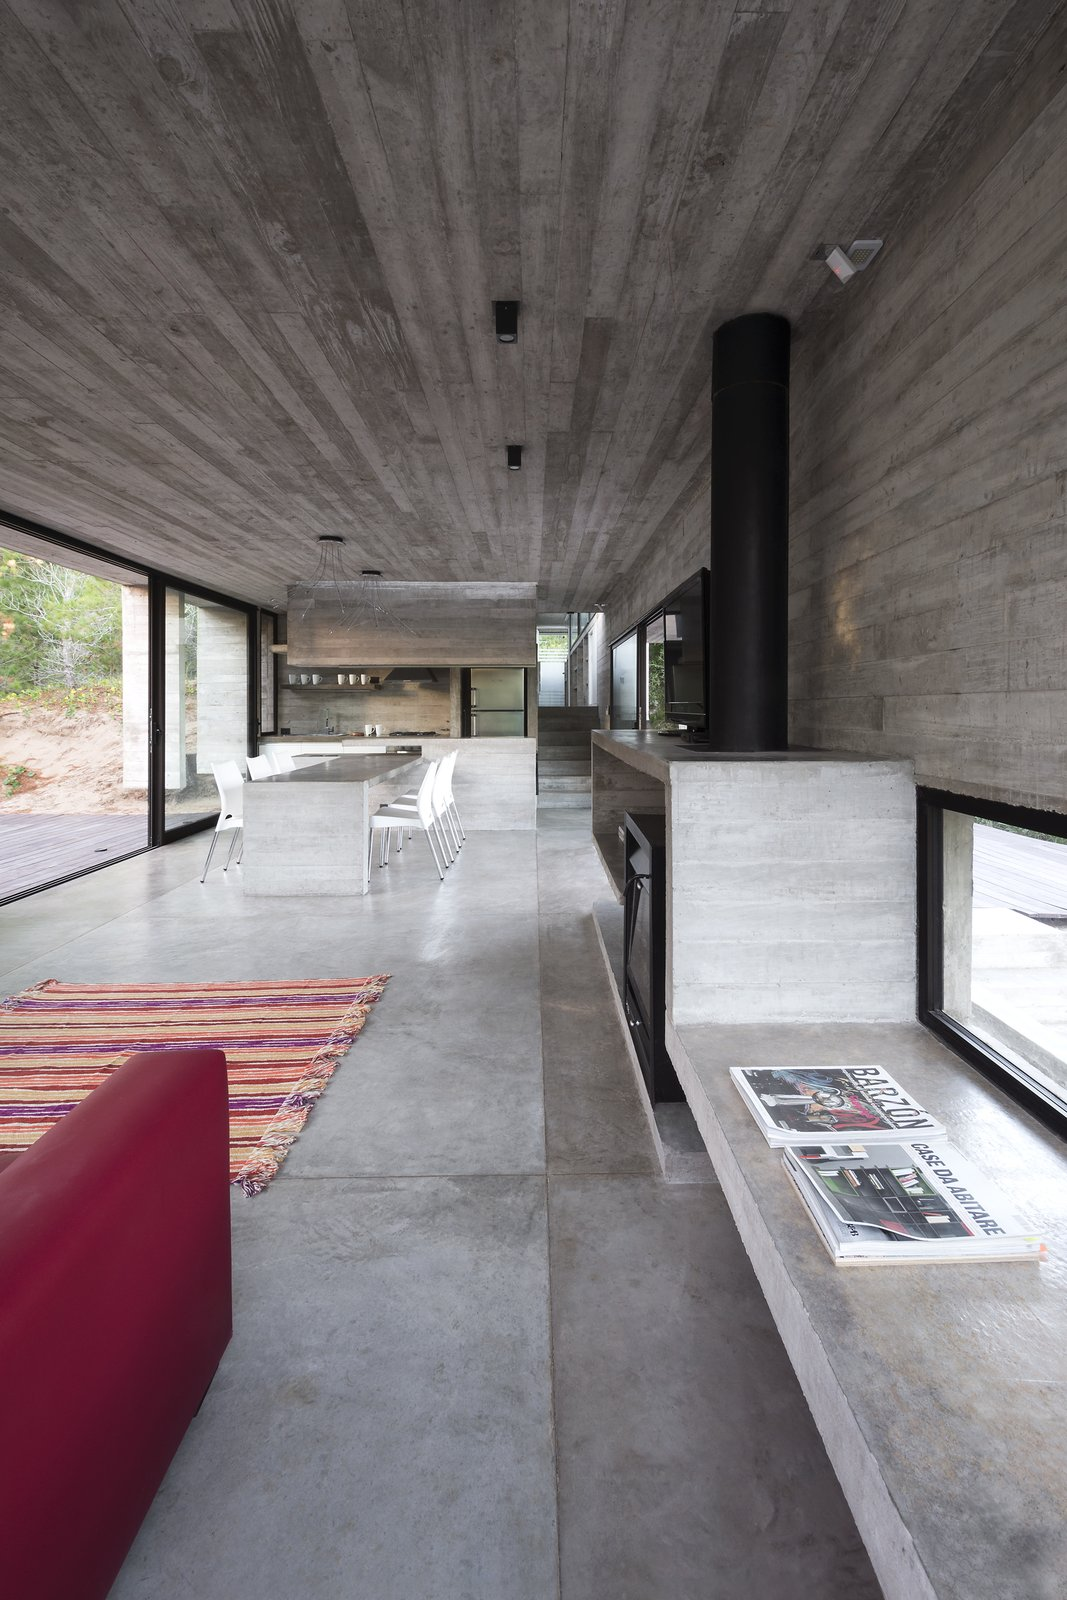 Living Room, Sofa, Chair, Concrete Floor, Accent Lighting, Pendant Lighting, and Wood Burning Fireplace Wein House - Besonías Almeida arquitectos  Wein House by Besonías Almeida arquitectos